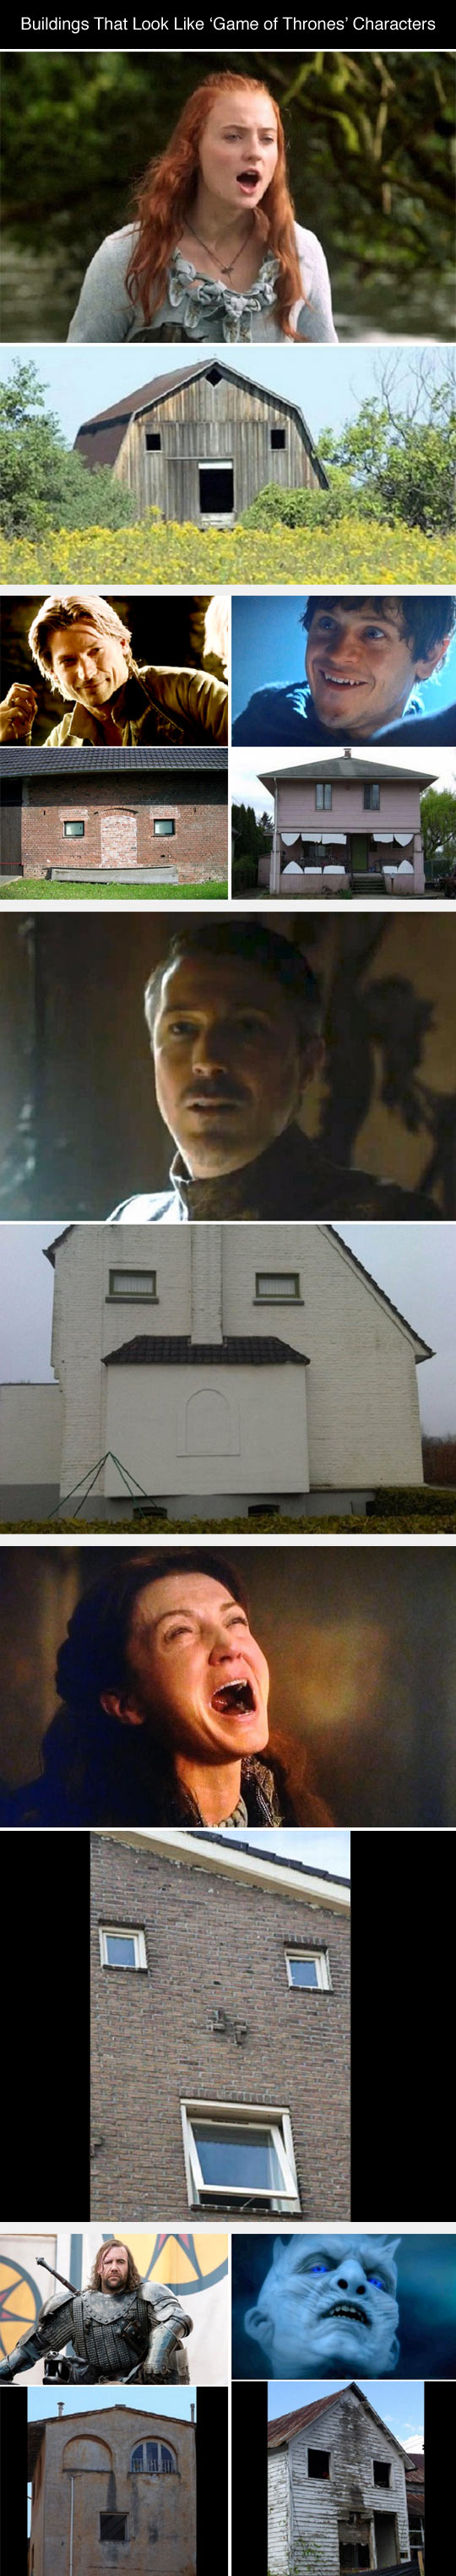 buildings that look like game of thrones characters, got, houses that look like game of thrones characters, game of thrones houses, game of thrones buildings, game of thrones characters that look like buildings, game of thrones characters that look like houses, funny game of thrones, funny game of thrones pic, funny game of thrones pics, funny game of thrones photo, funny game of thrones photos, funny game of thrones picture, funny game of thrones pictures, game of thrones characters, game of thrones cast, funny vid, funny vids, funny pics, funny pics, funny pictures, funny picture, funny photo, funny photos